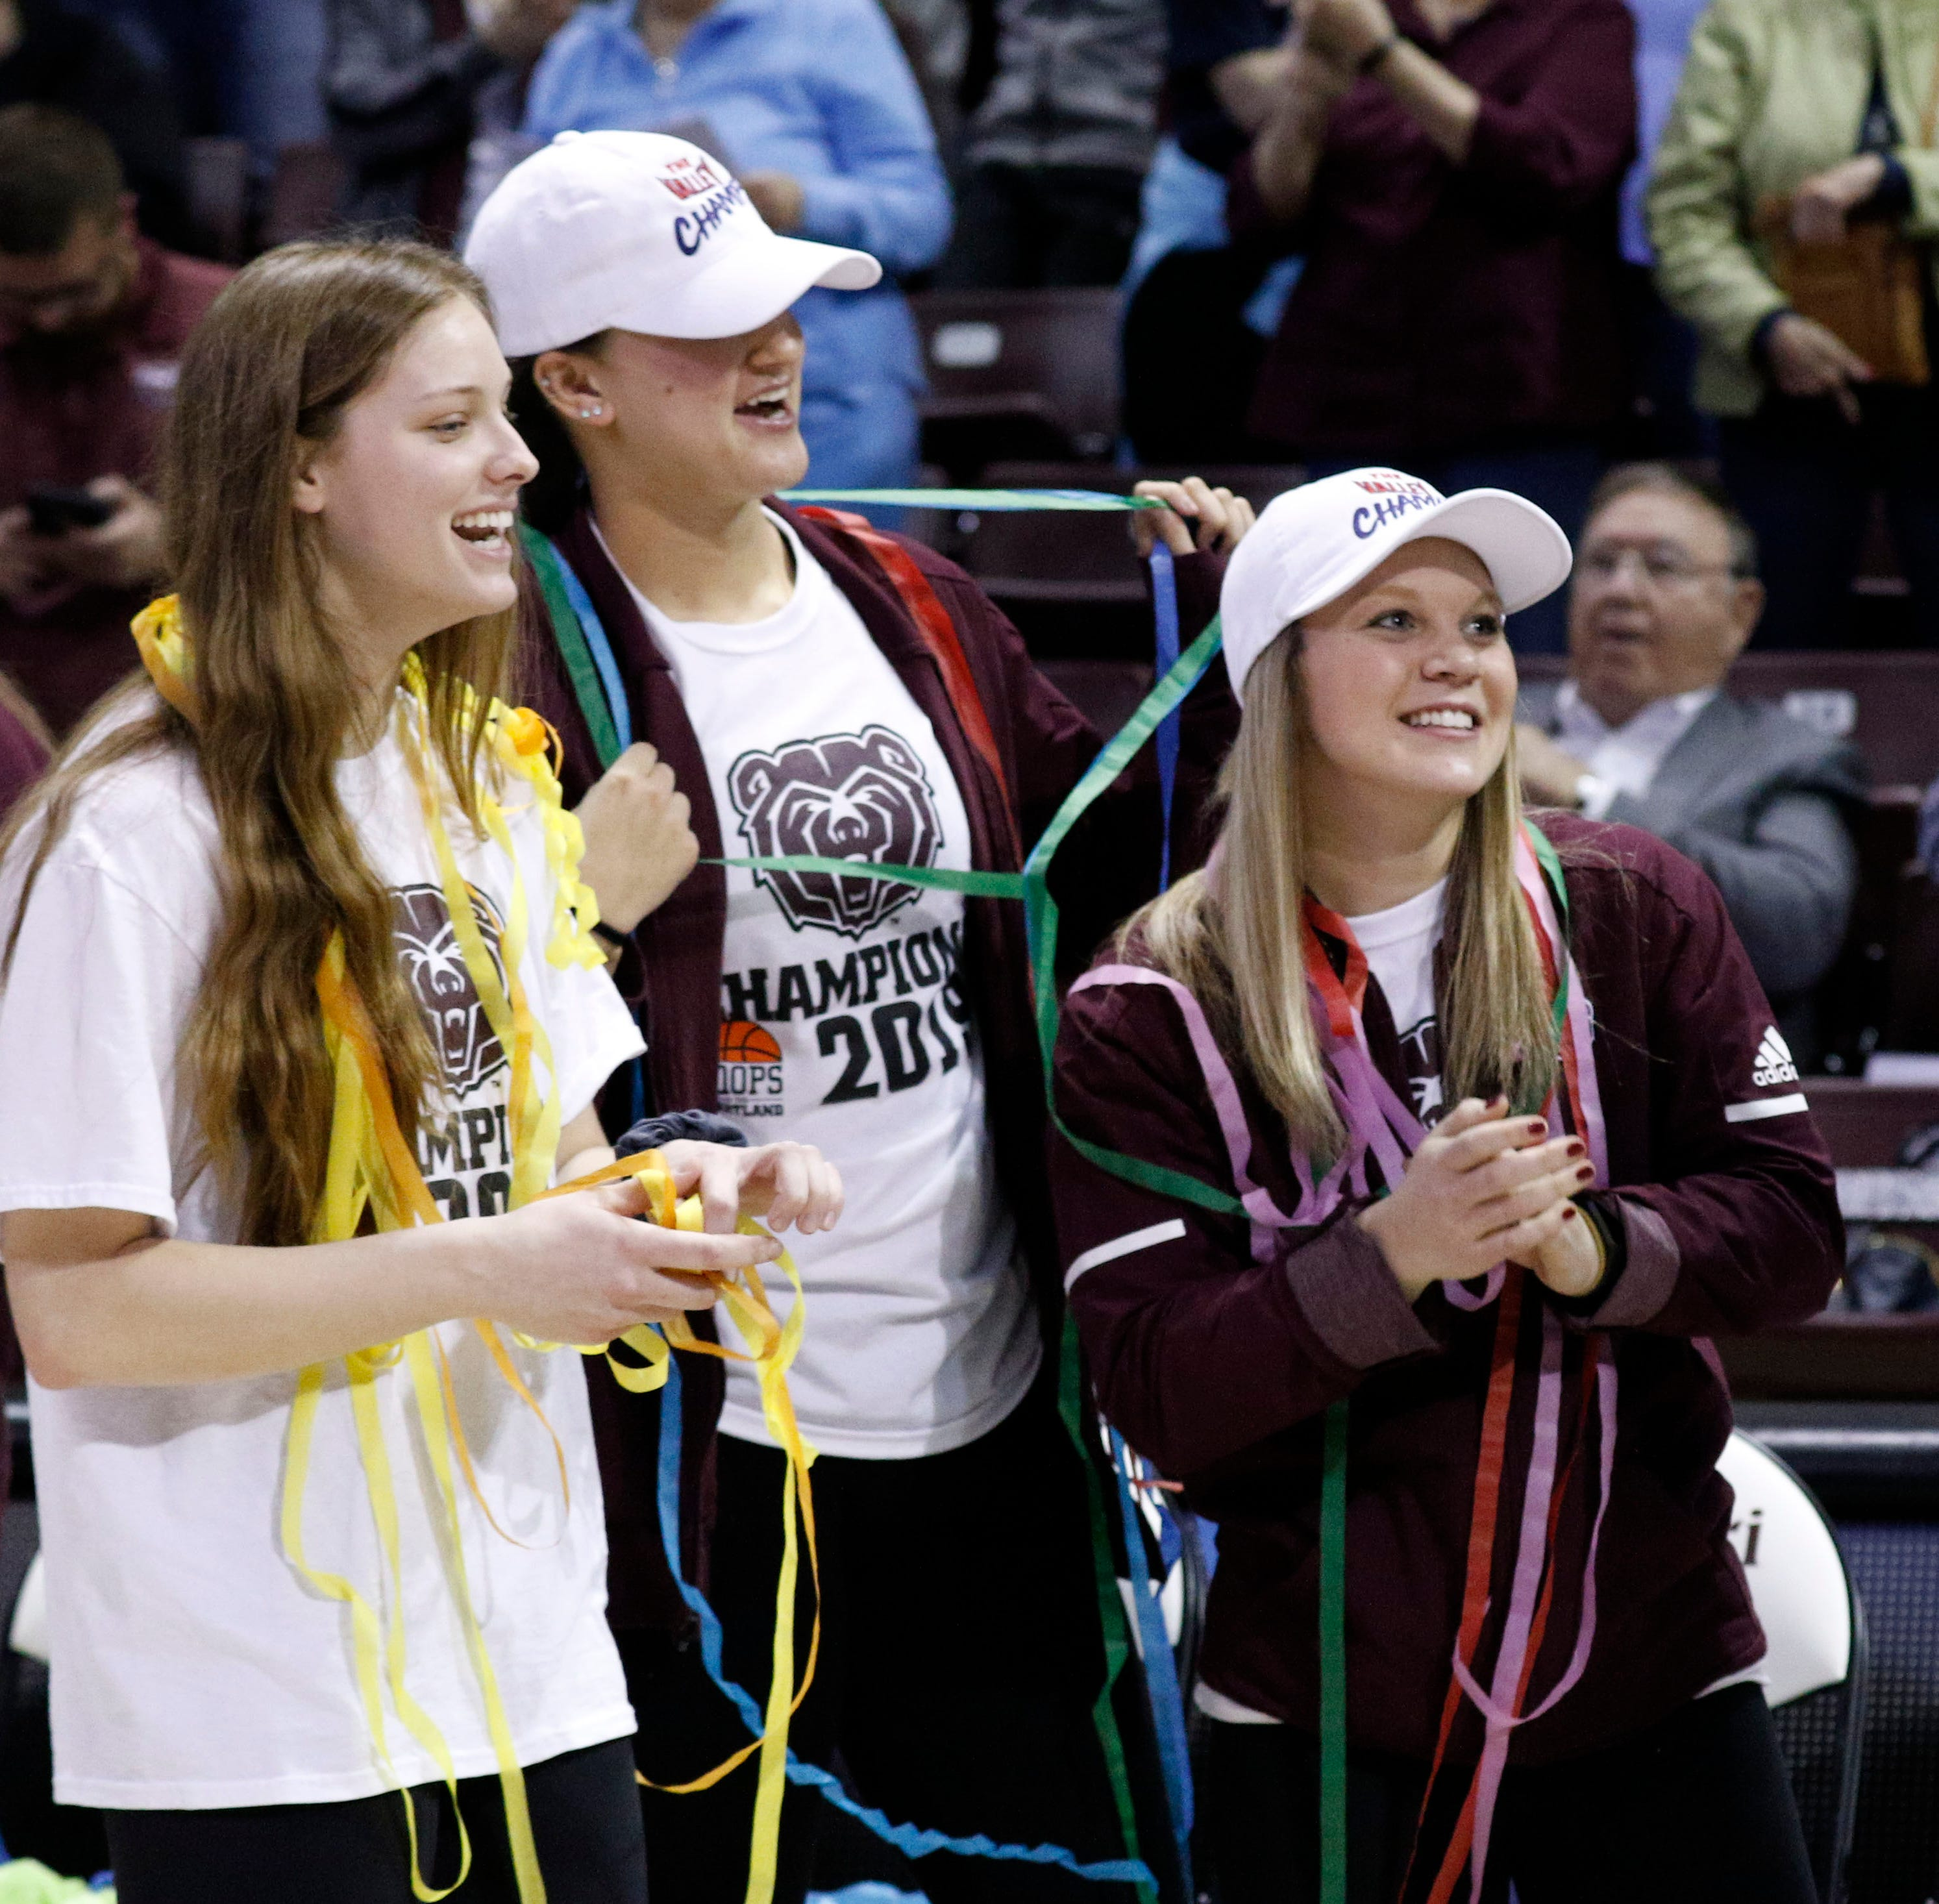 Leaked NCAA Tournament bracket was a 'bummer,' but it didn't stop the Lady Bears' celebration